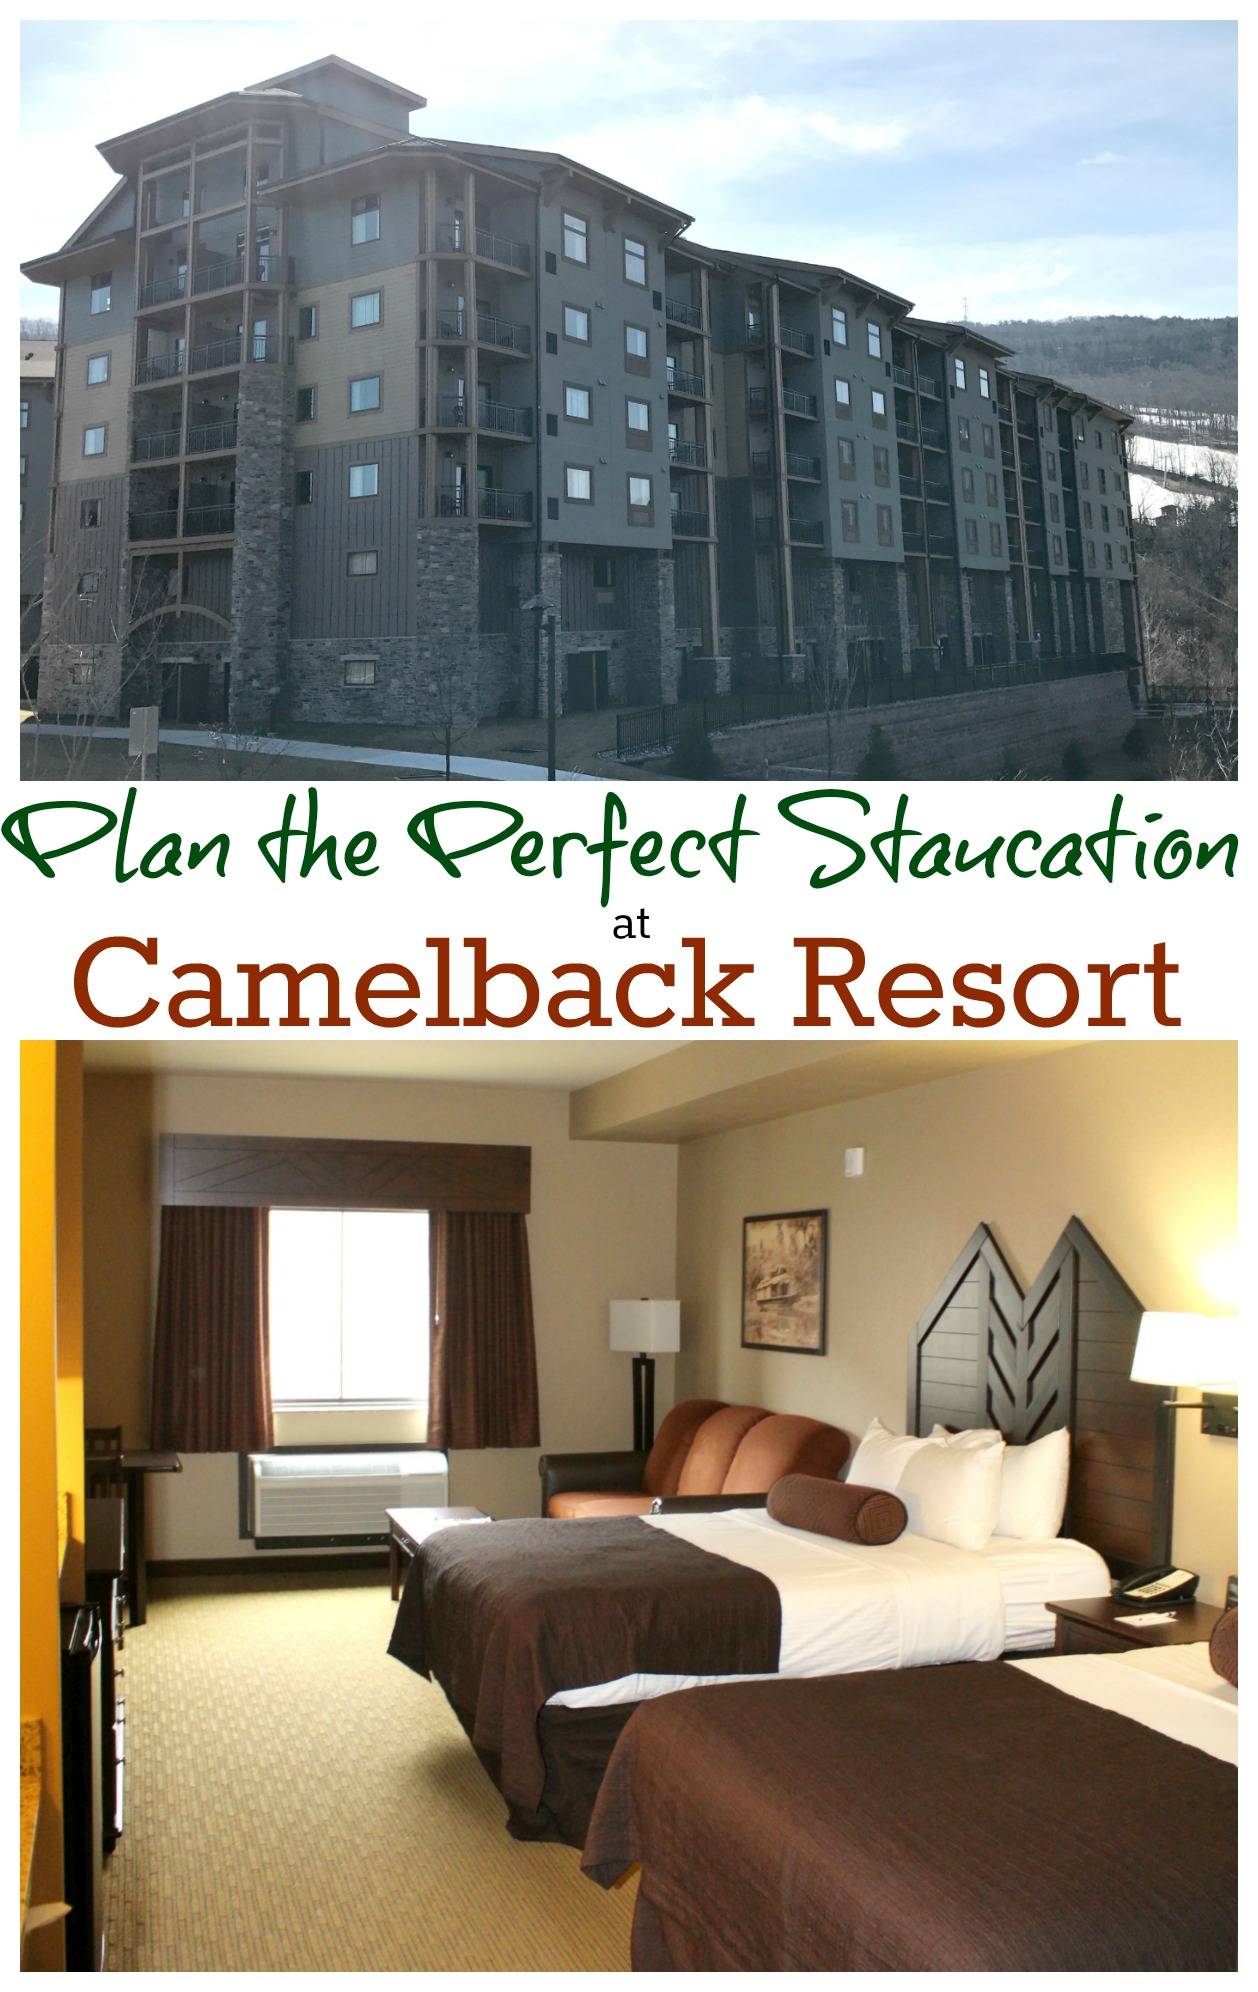 Plan the Perfect Staycation at Camelback Resort